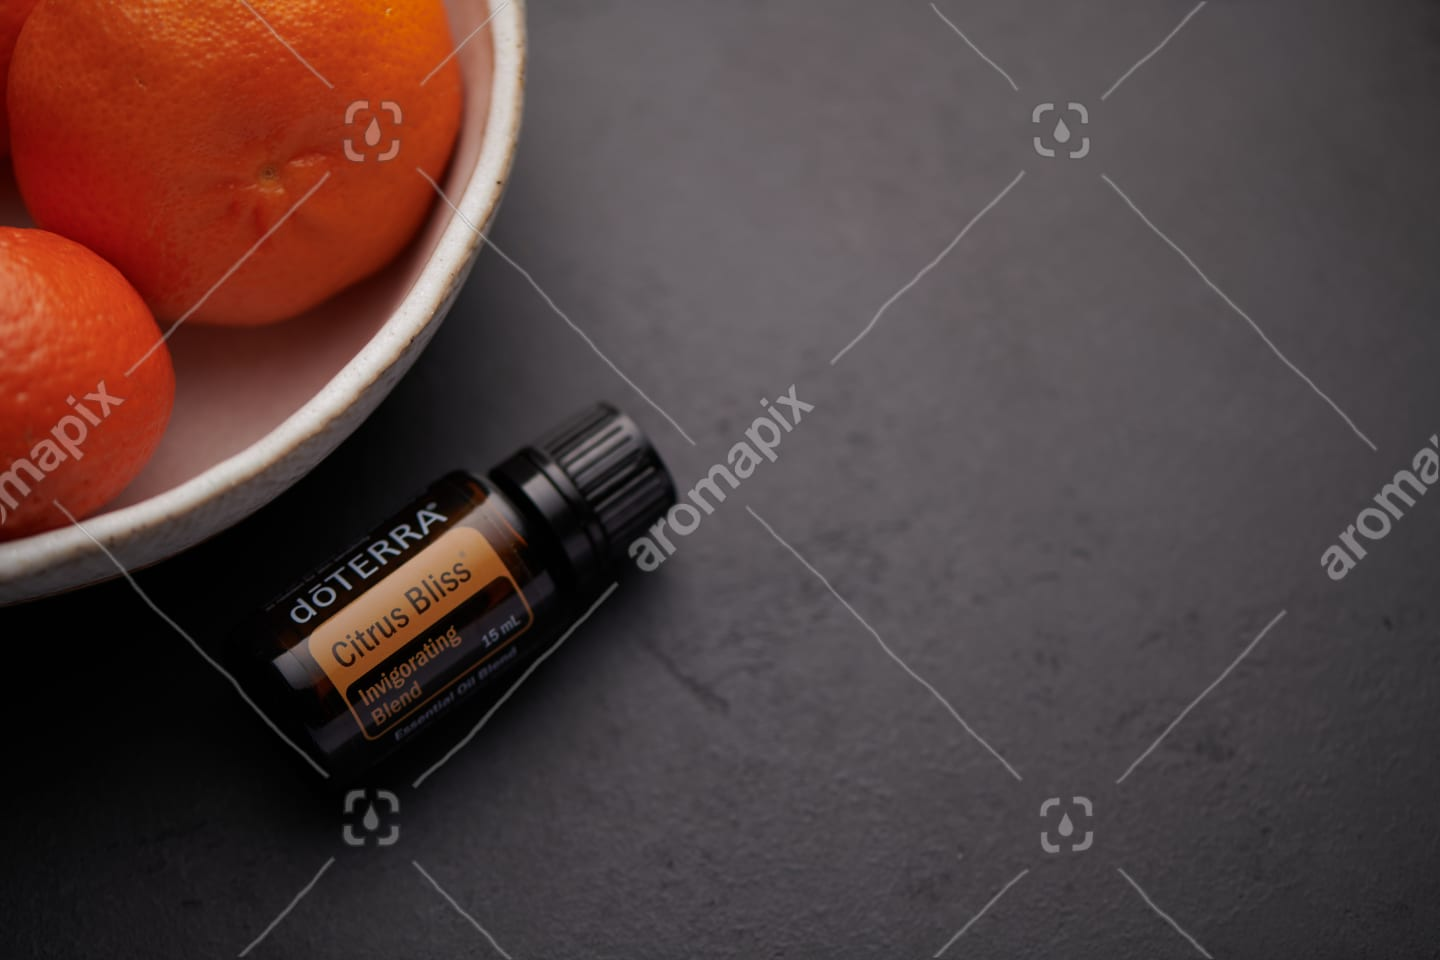 doTERRA Citrus Bliss product and citrus fruit in white bowl